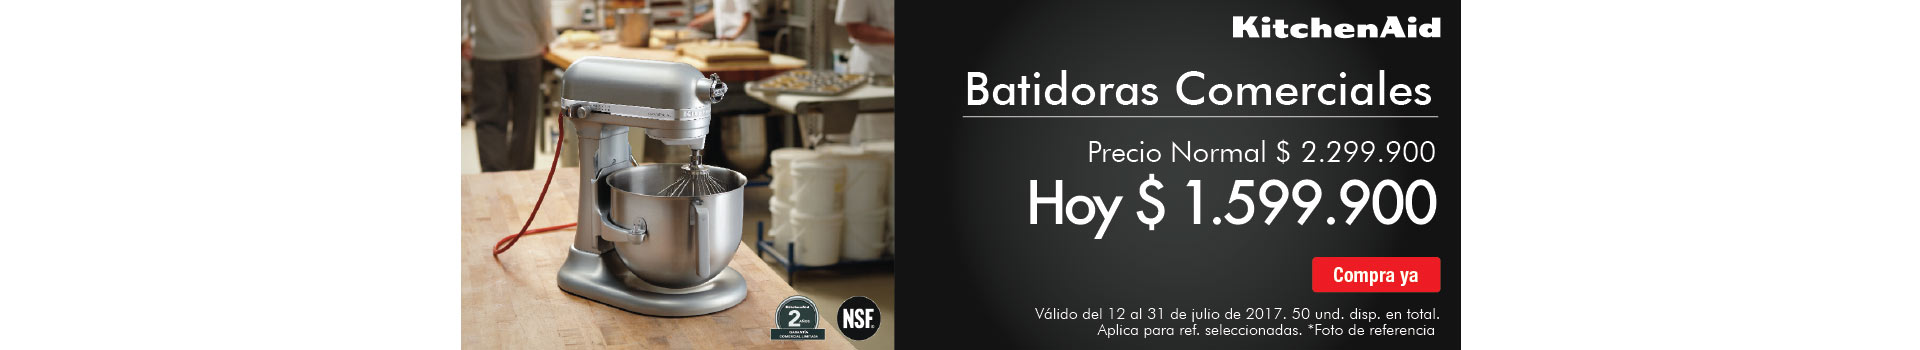 CAT ELECT - 25%dto en Batidoras KITCHENAID - jul12